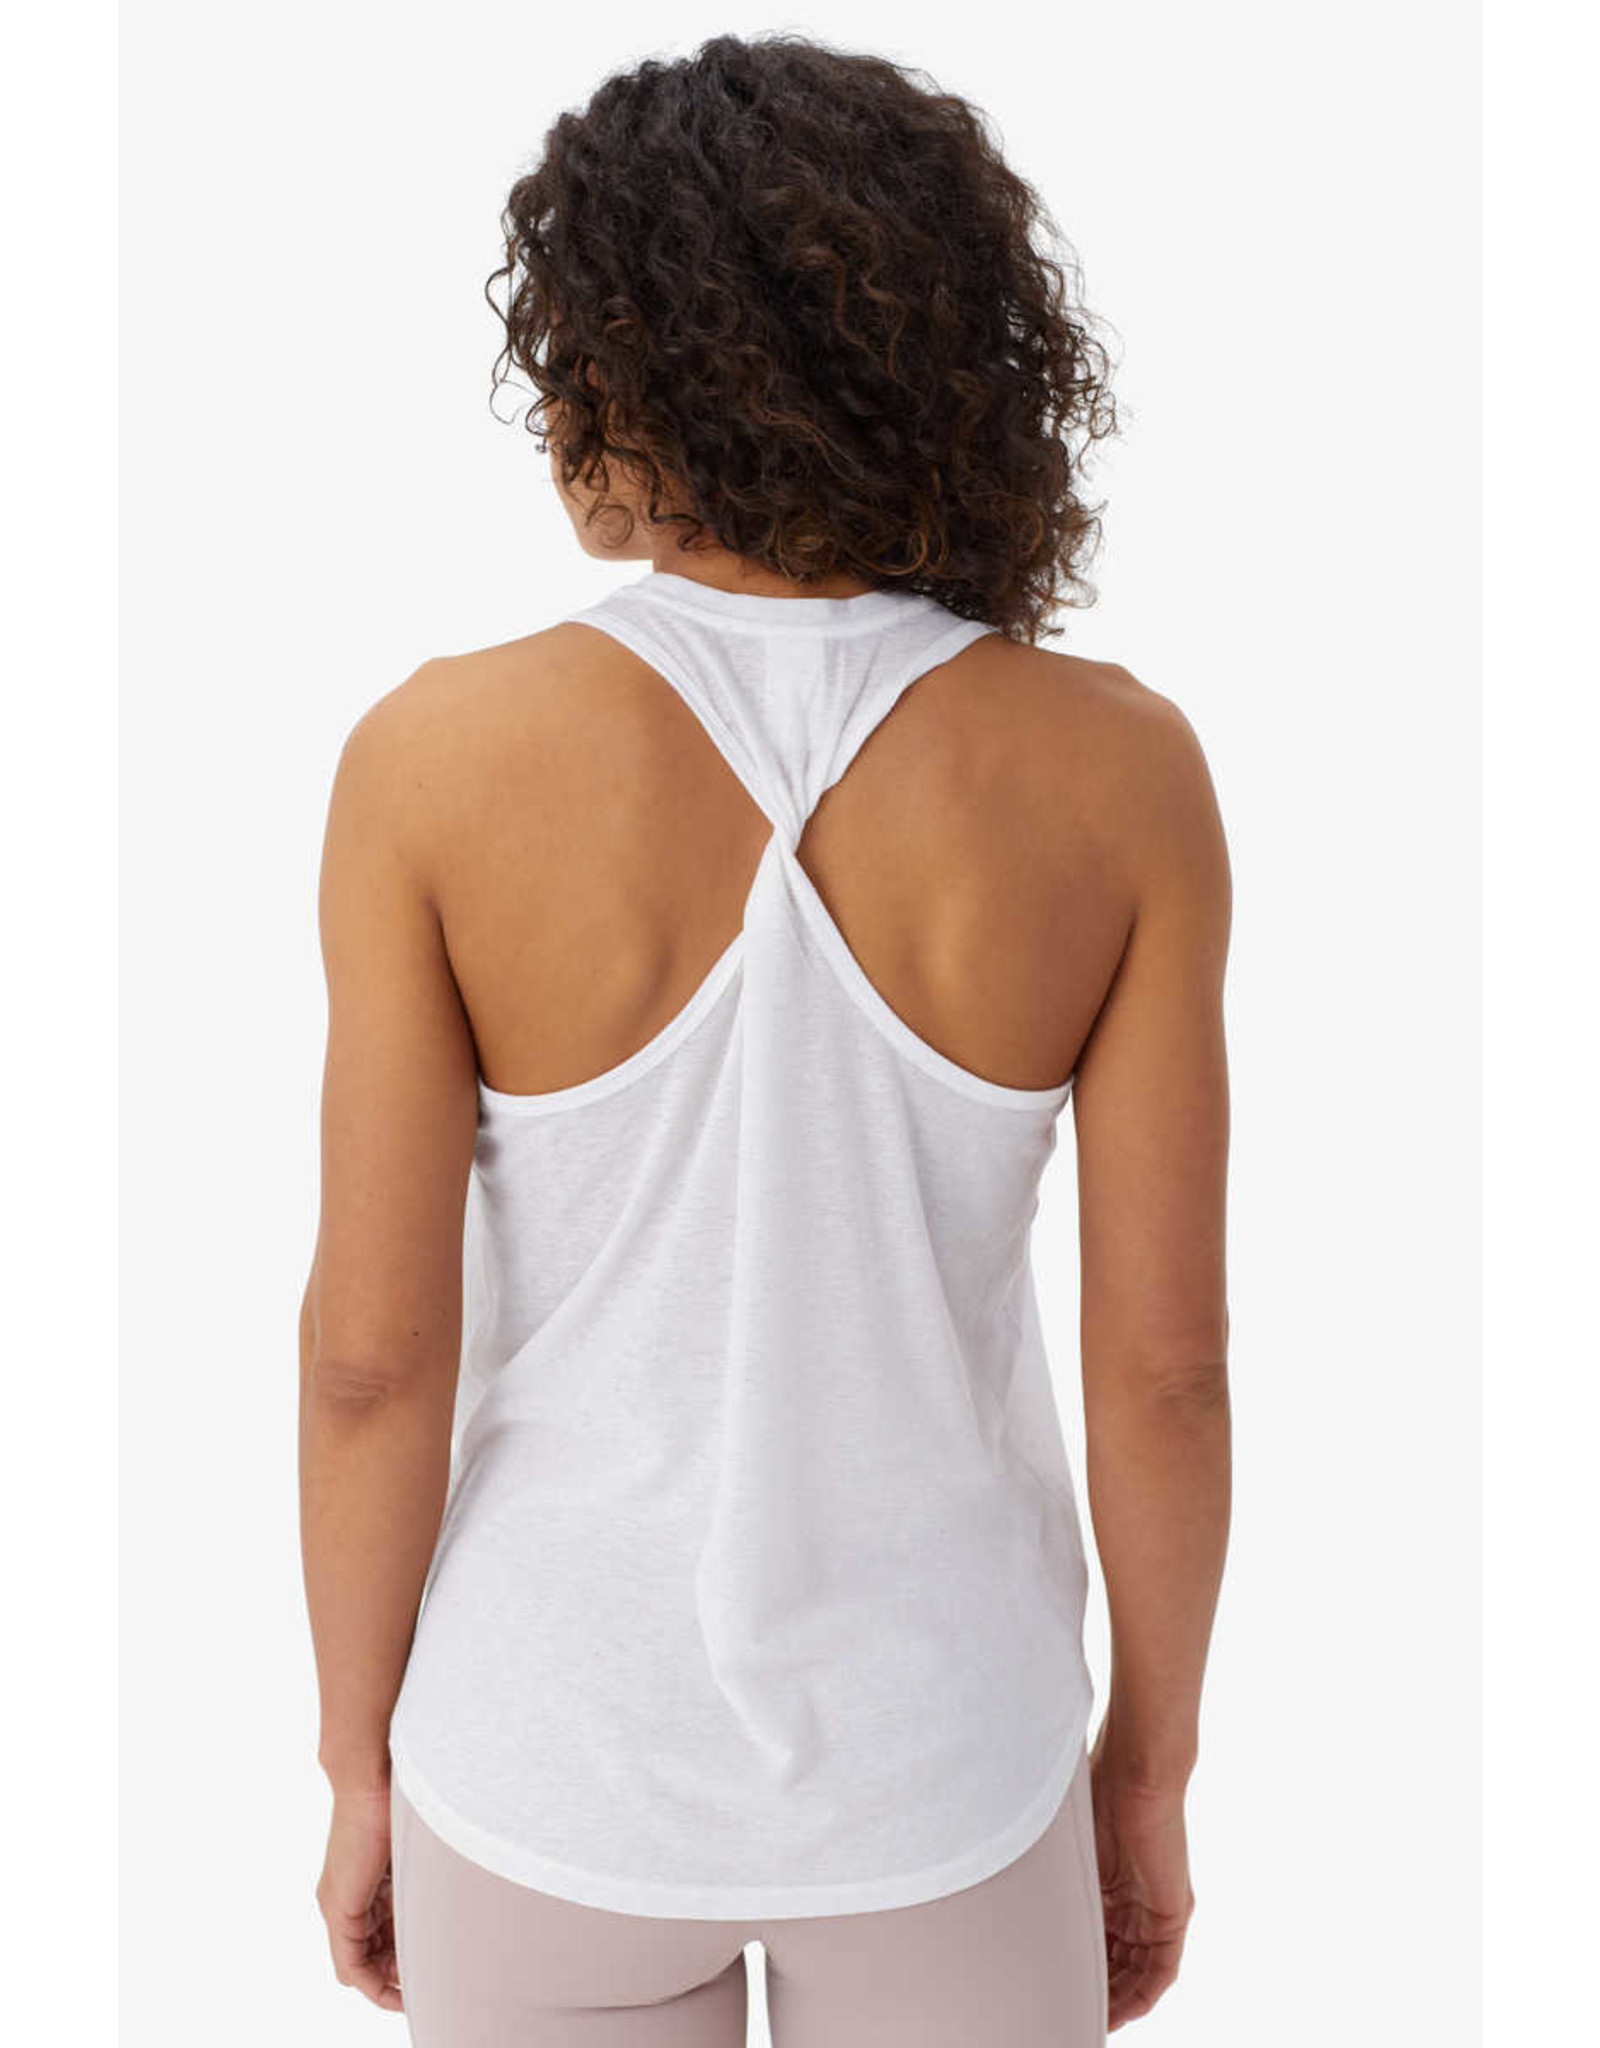 LOLË LSW3884 CAMISOLE LIMITLESS